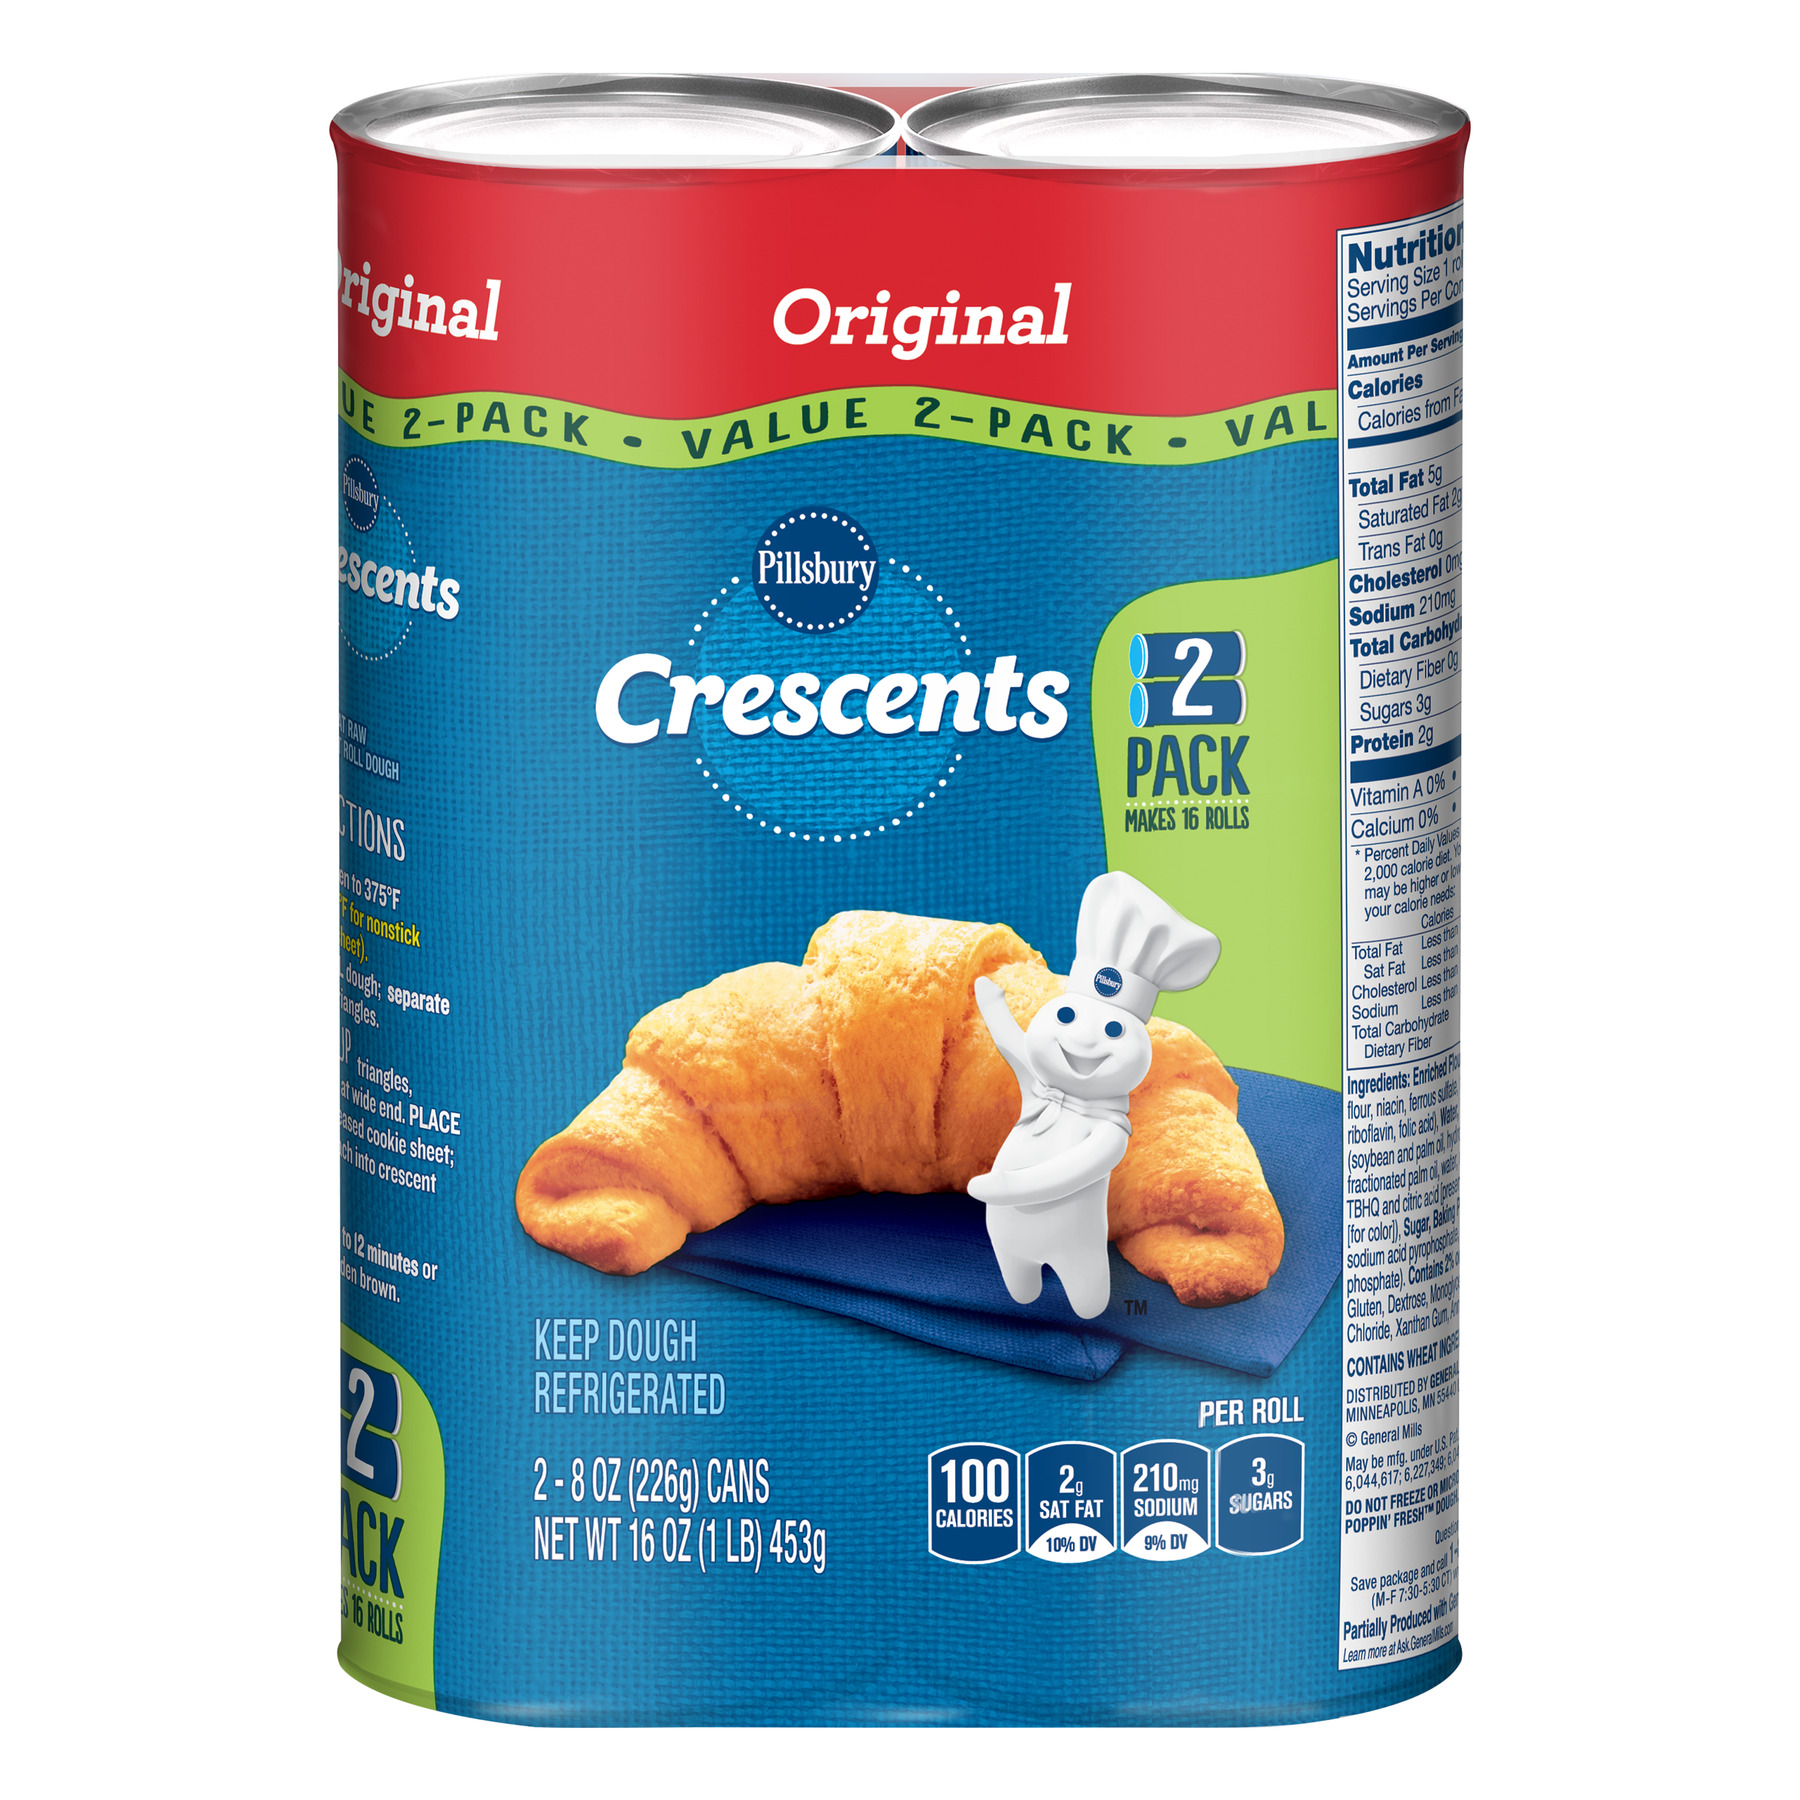 Pillsbury Crescent Rolls Original, 2 Pack, 16 Ct, 16 oz